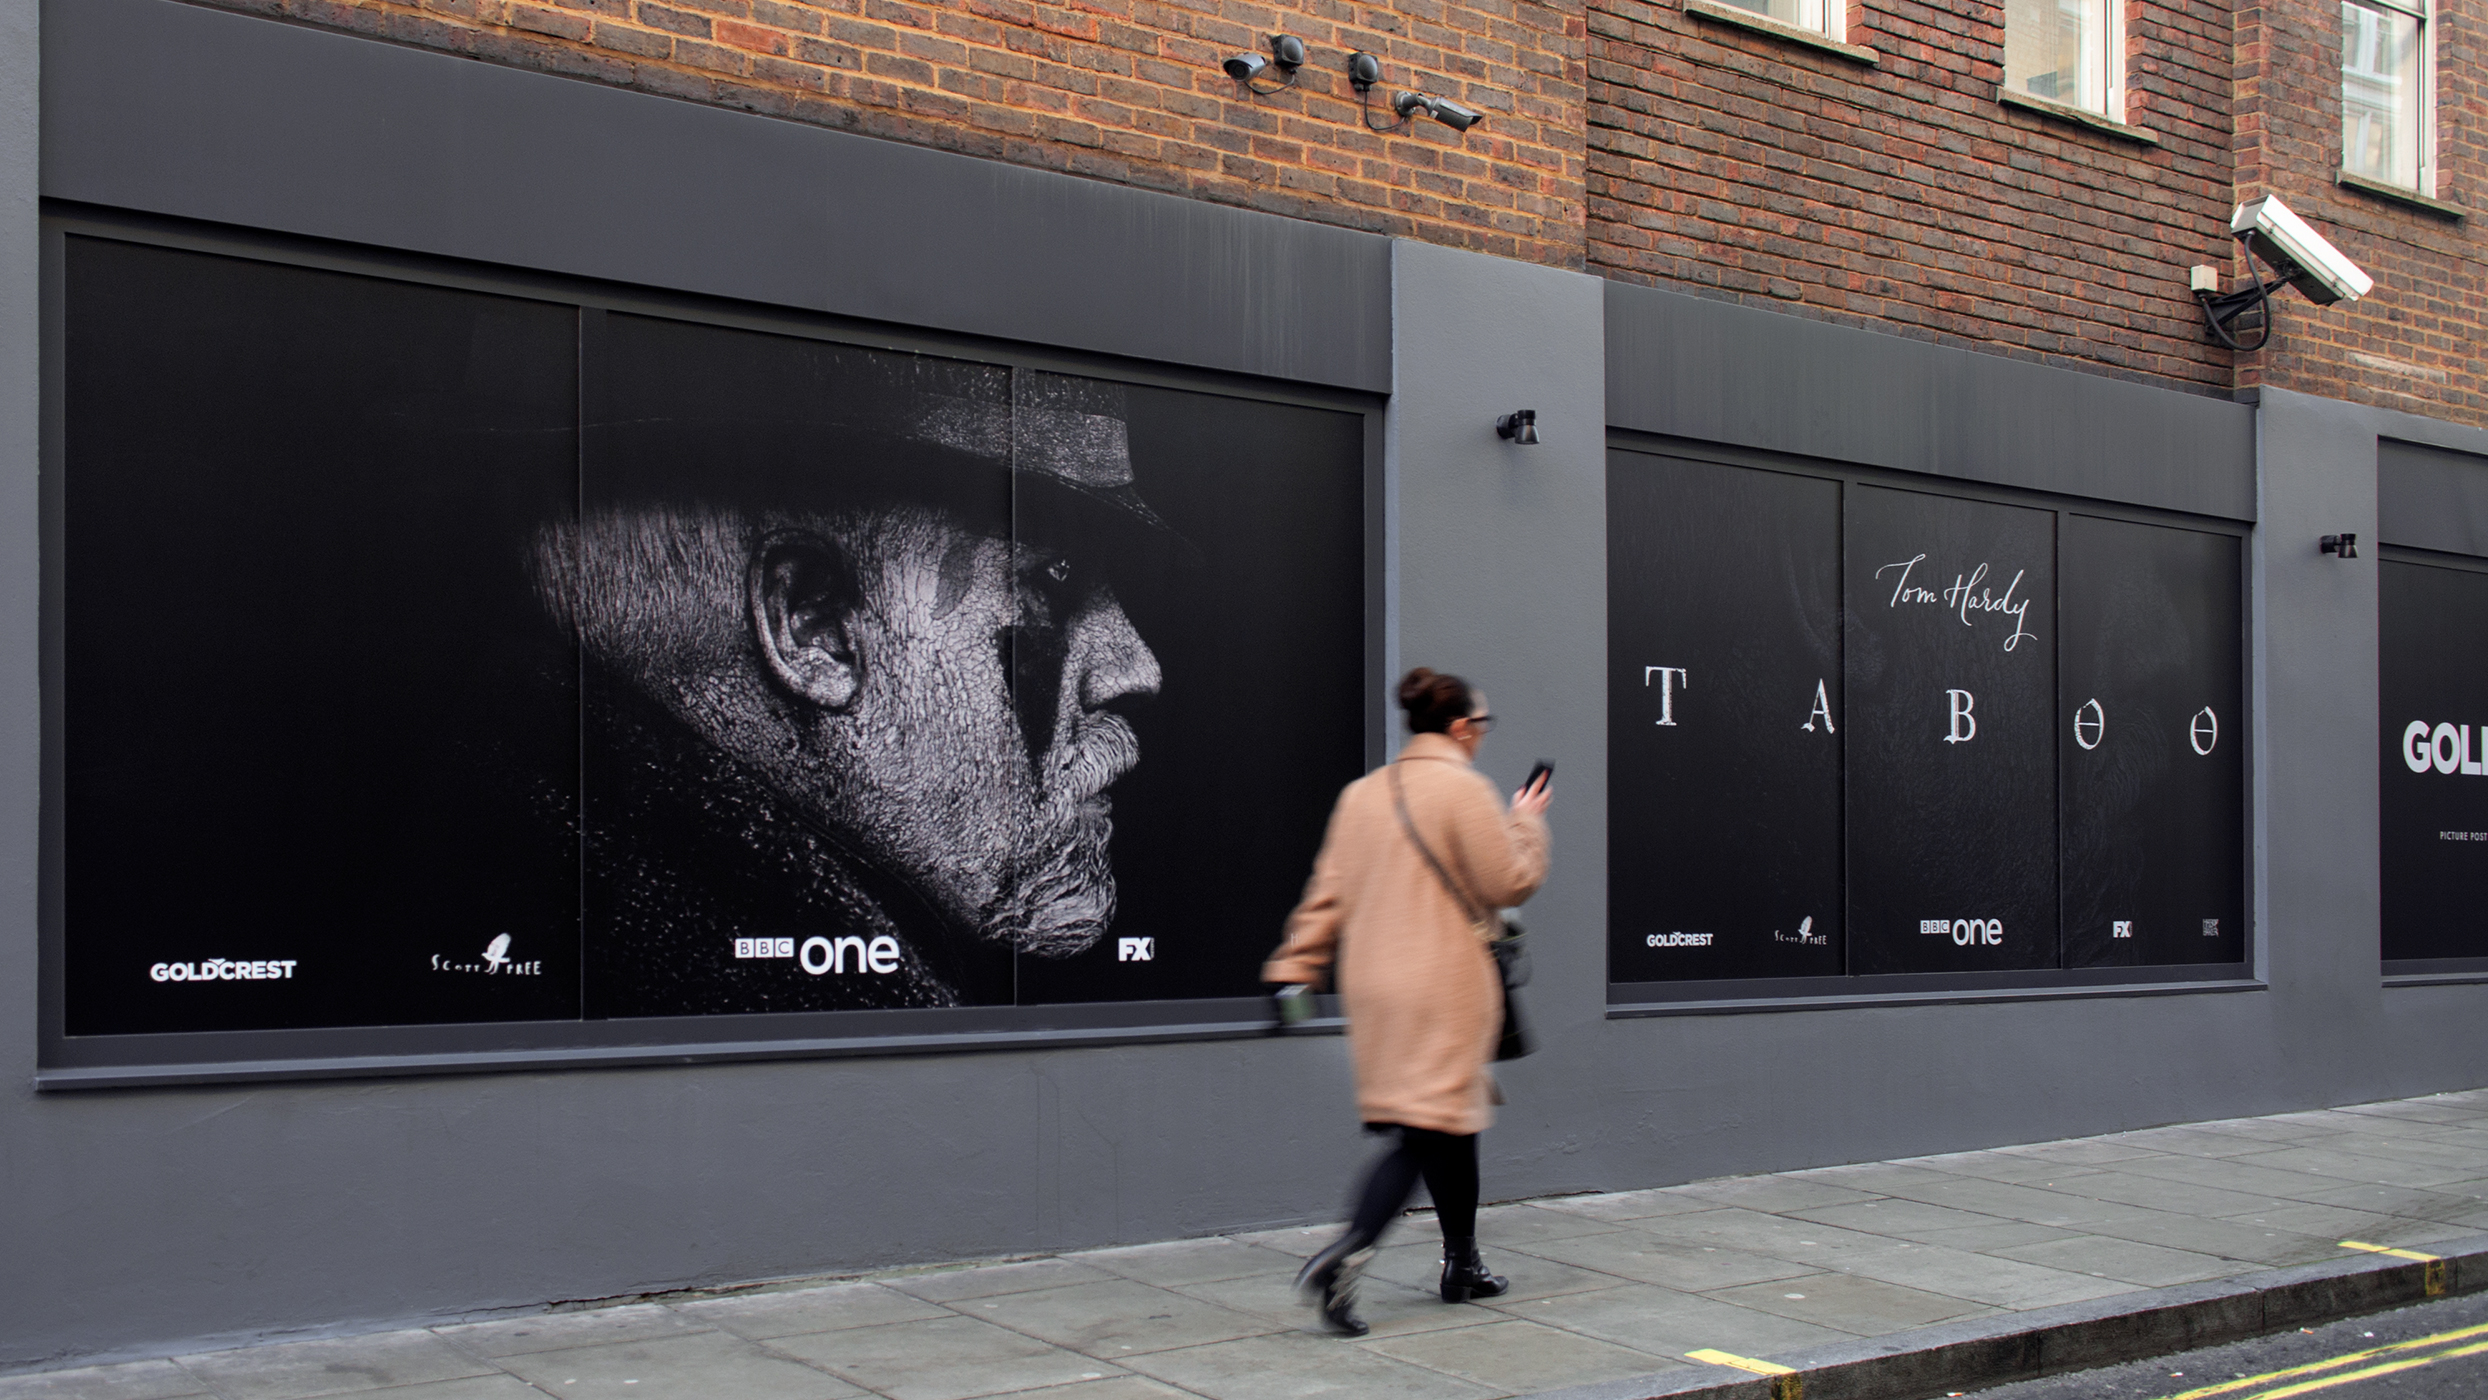 Goldcrest Taboo BBC television Tom Hardy window graphics print and installation